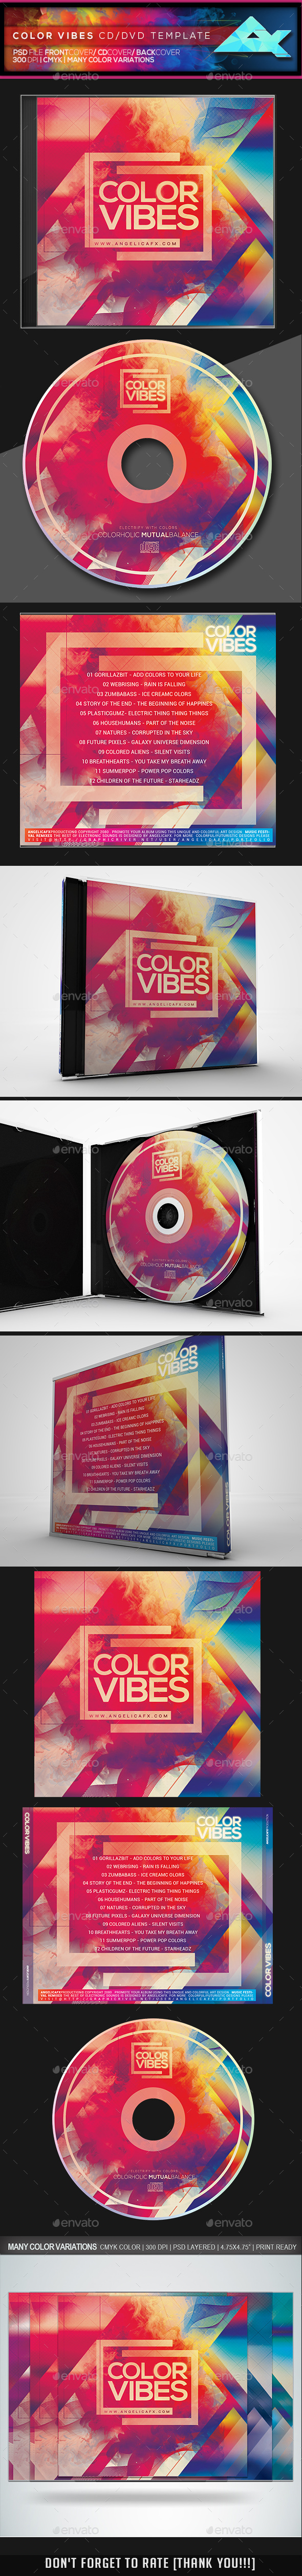 Color Vibes CD/DVD Template - CD & DVD Artwork Print Templates